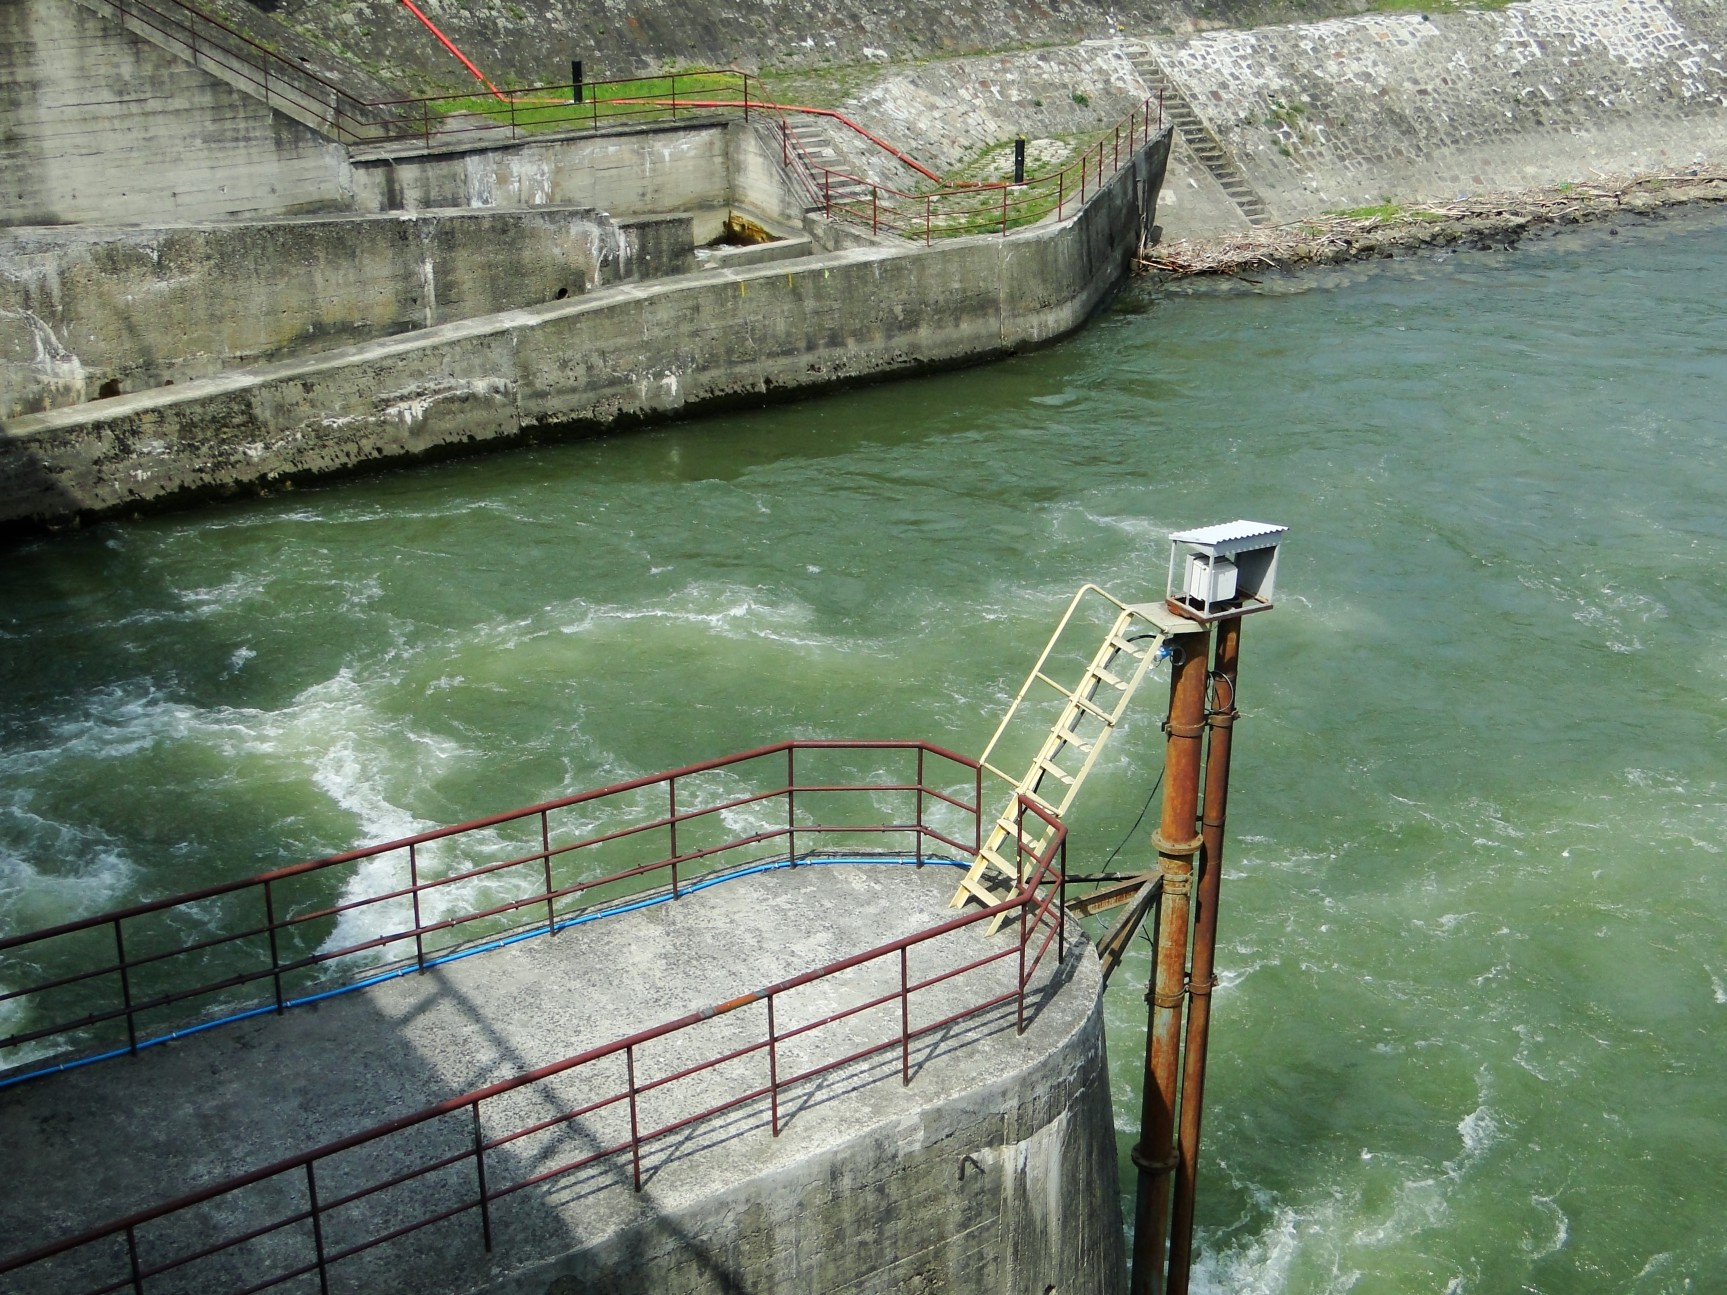 Czch%C3%B3w_-_Hydroelectric_power_plant_